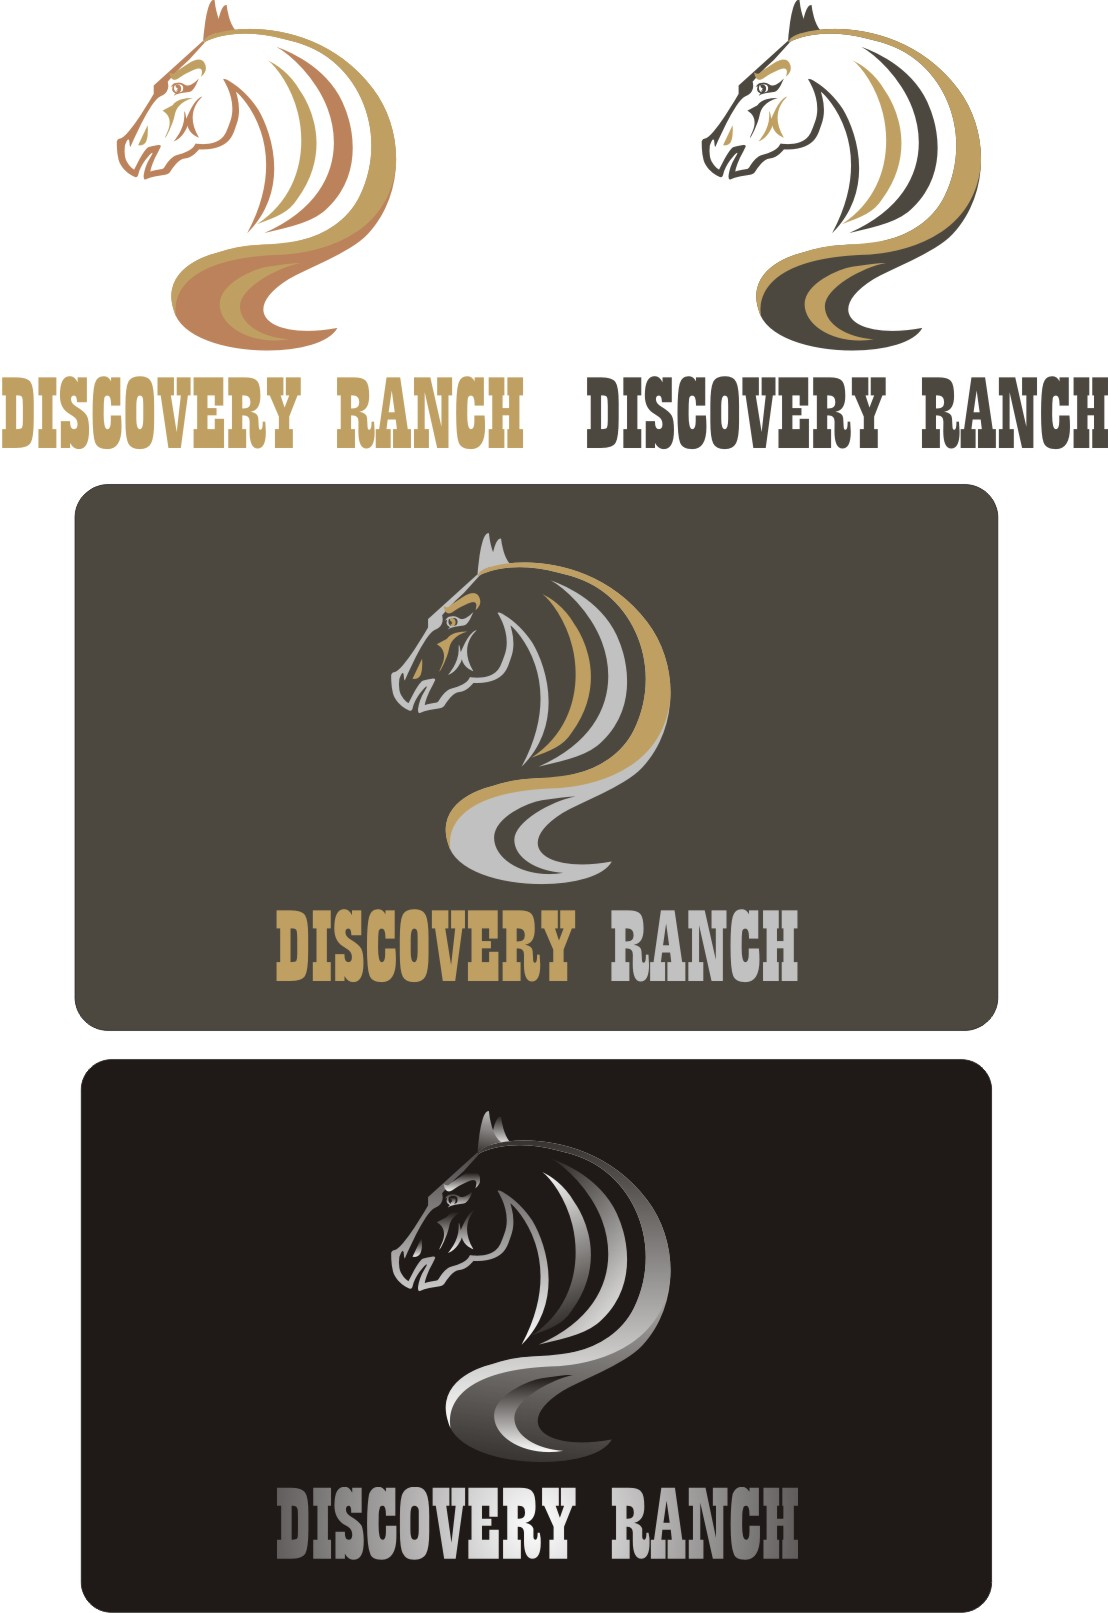 Logo Design by Korsunov Oleg - Entry No. 69 in the Logo Design Contest Creative Logo Design for Discovery Ranch.